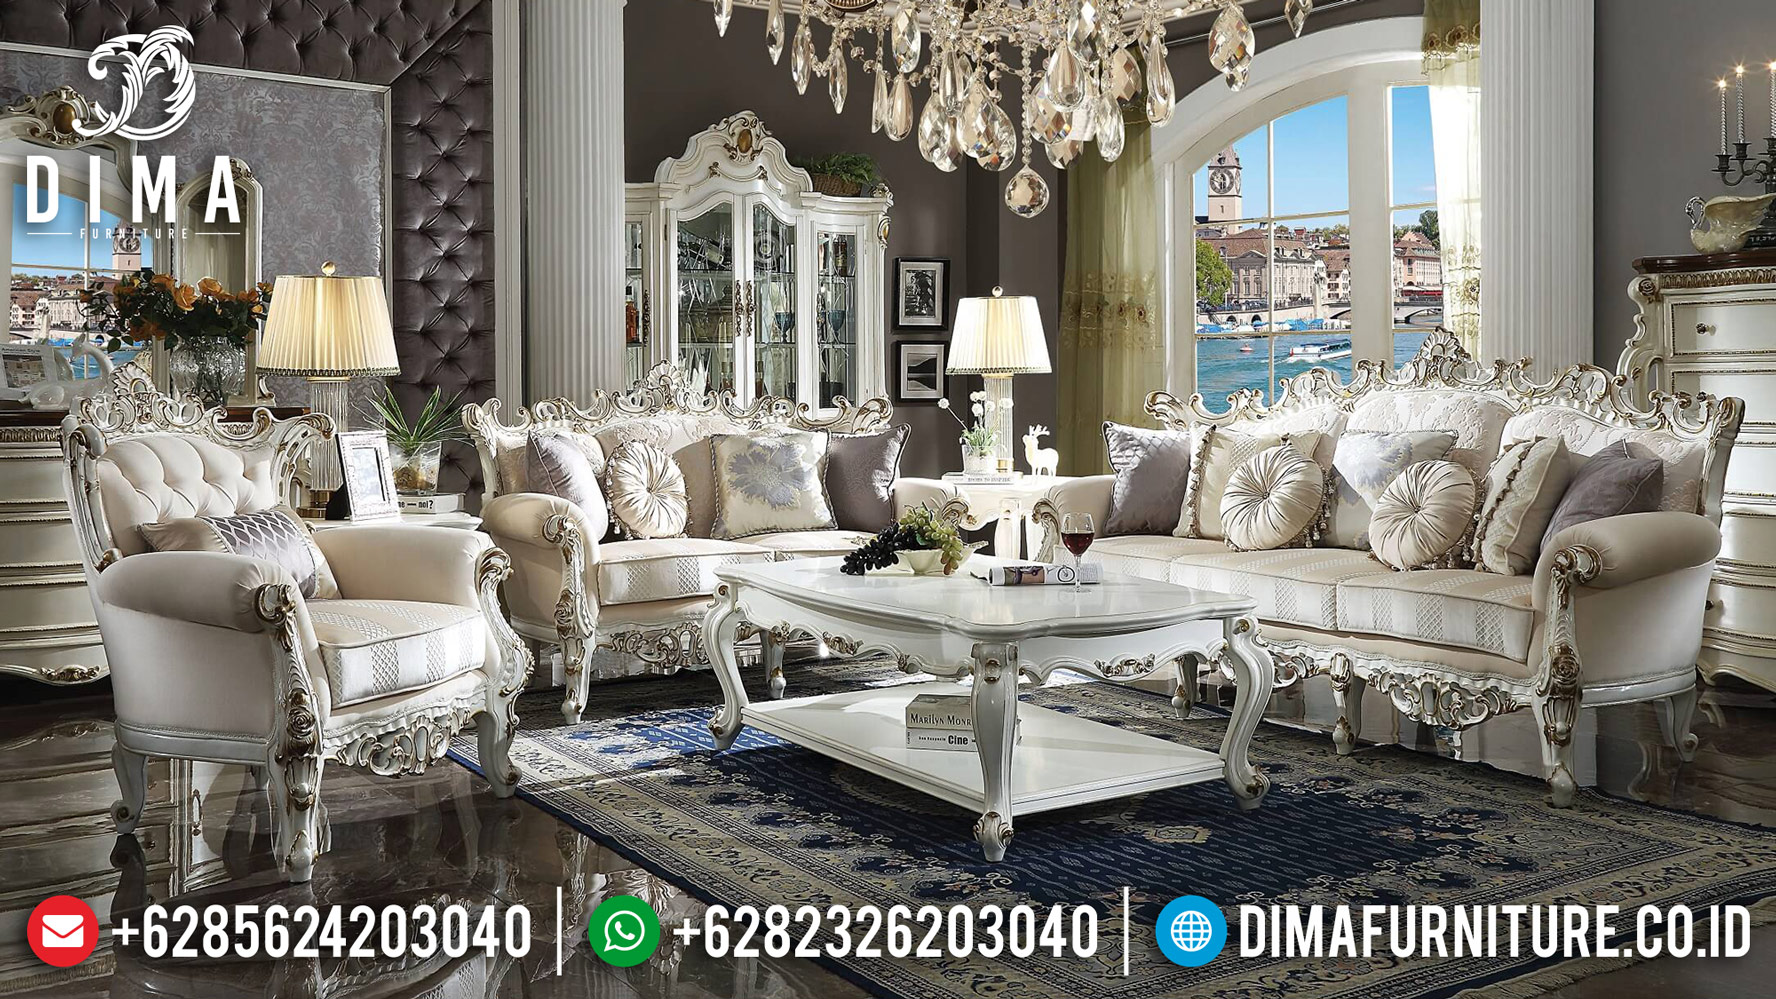 New 3 2 1 Set Sofa Tamu Mewah Pearl White Gold Duco Ukir Jepara DF-1237